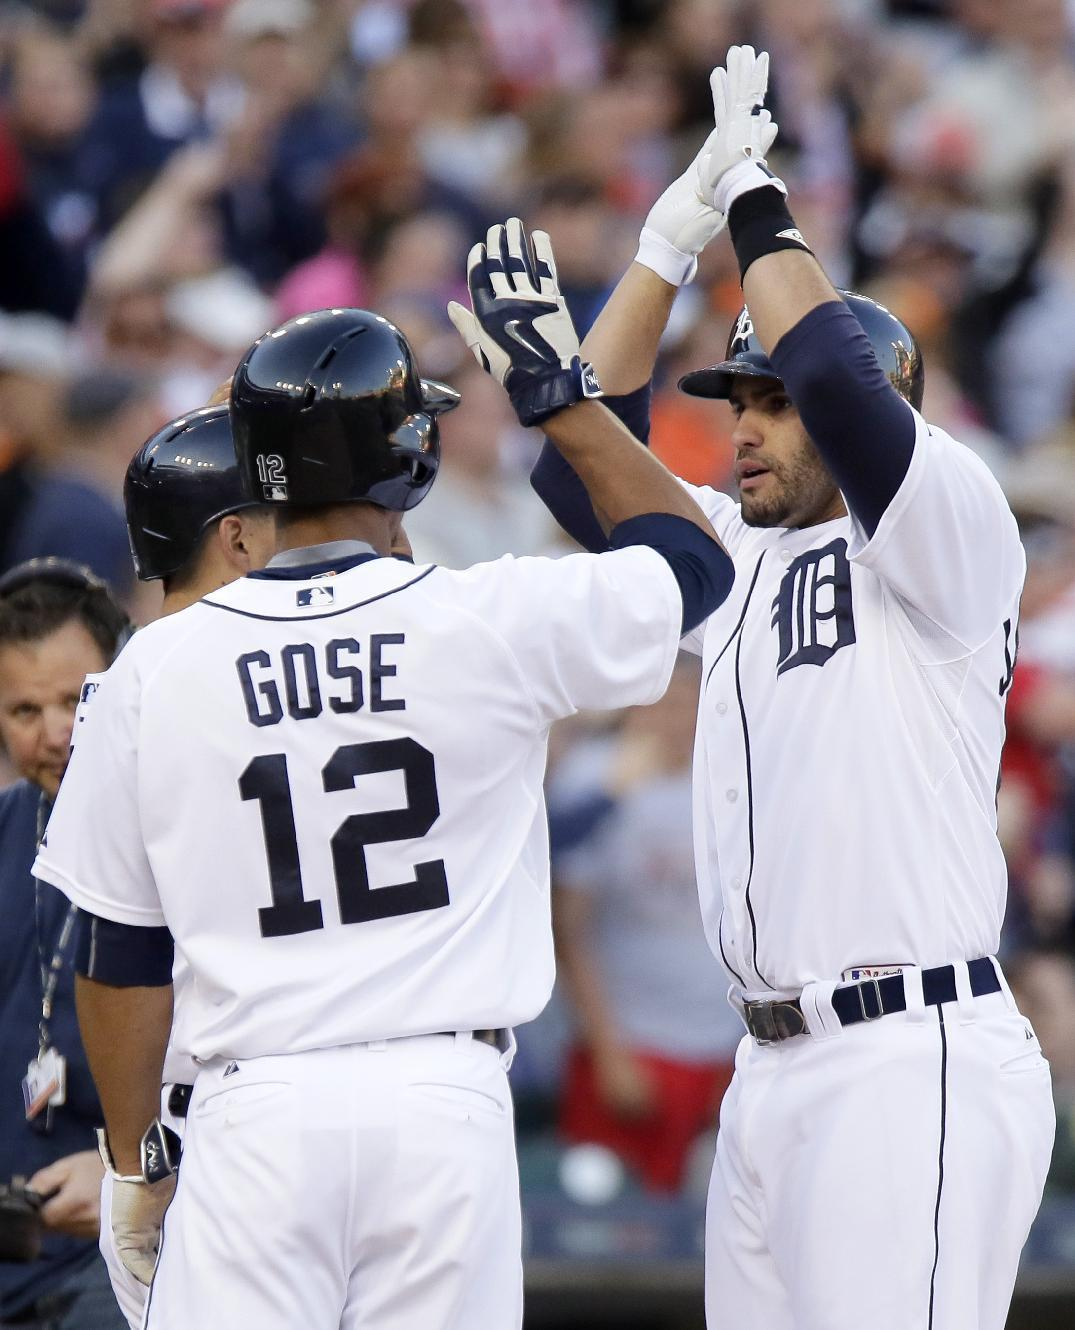 J.D. Martinez homer lifts Tigers to 6-2 win over Astros